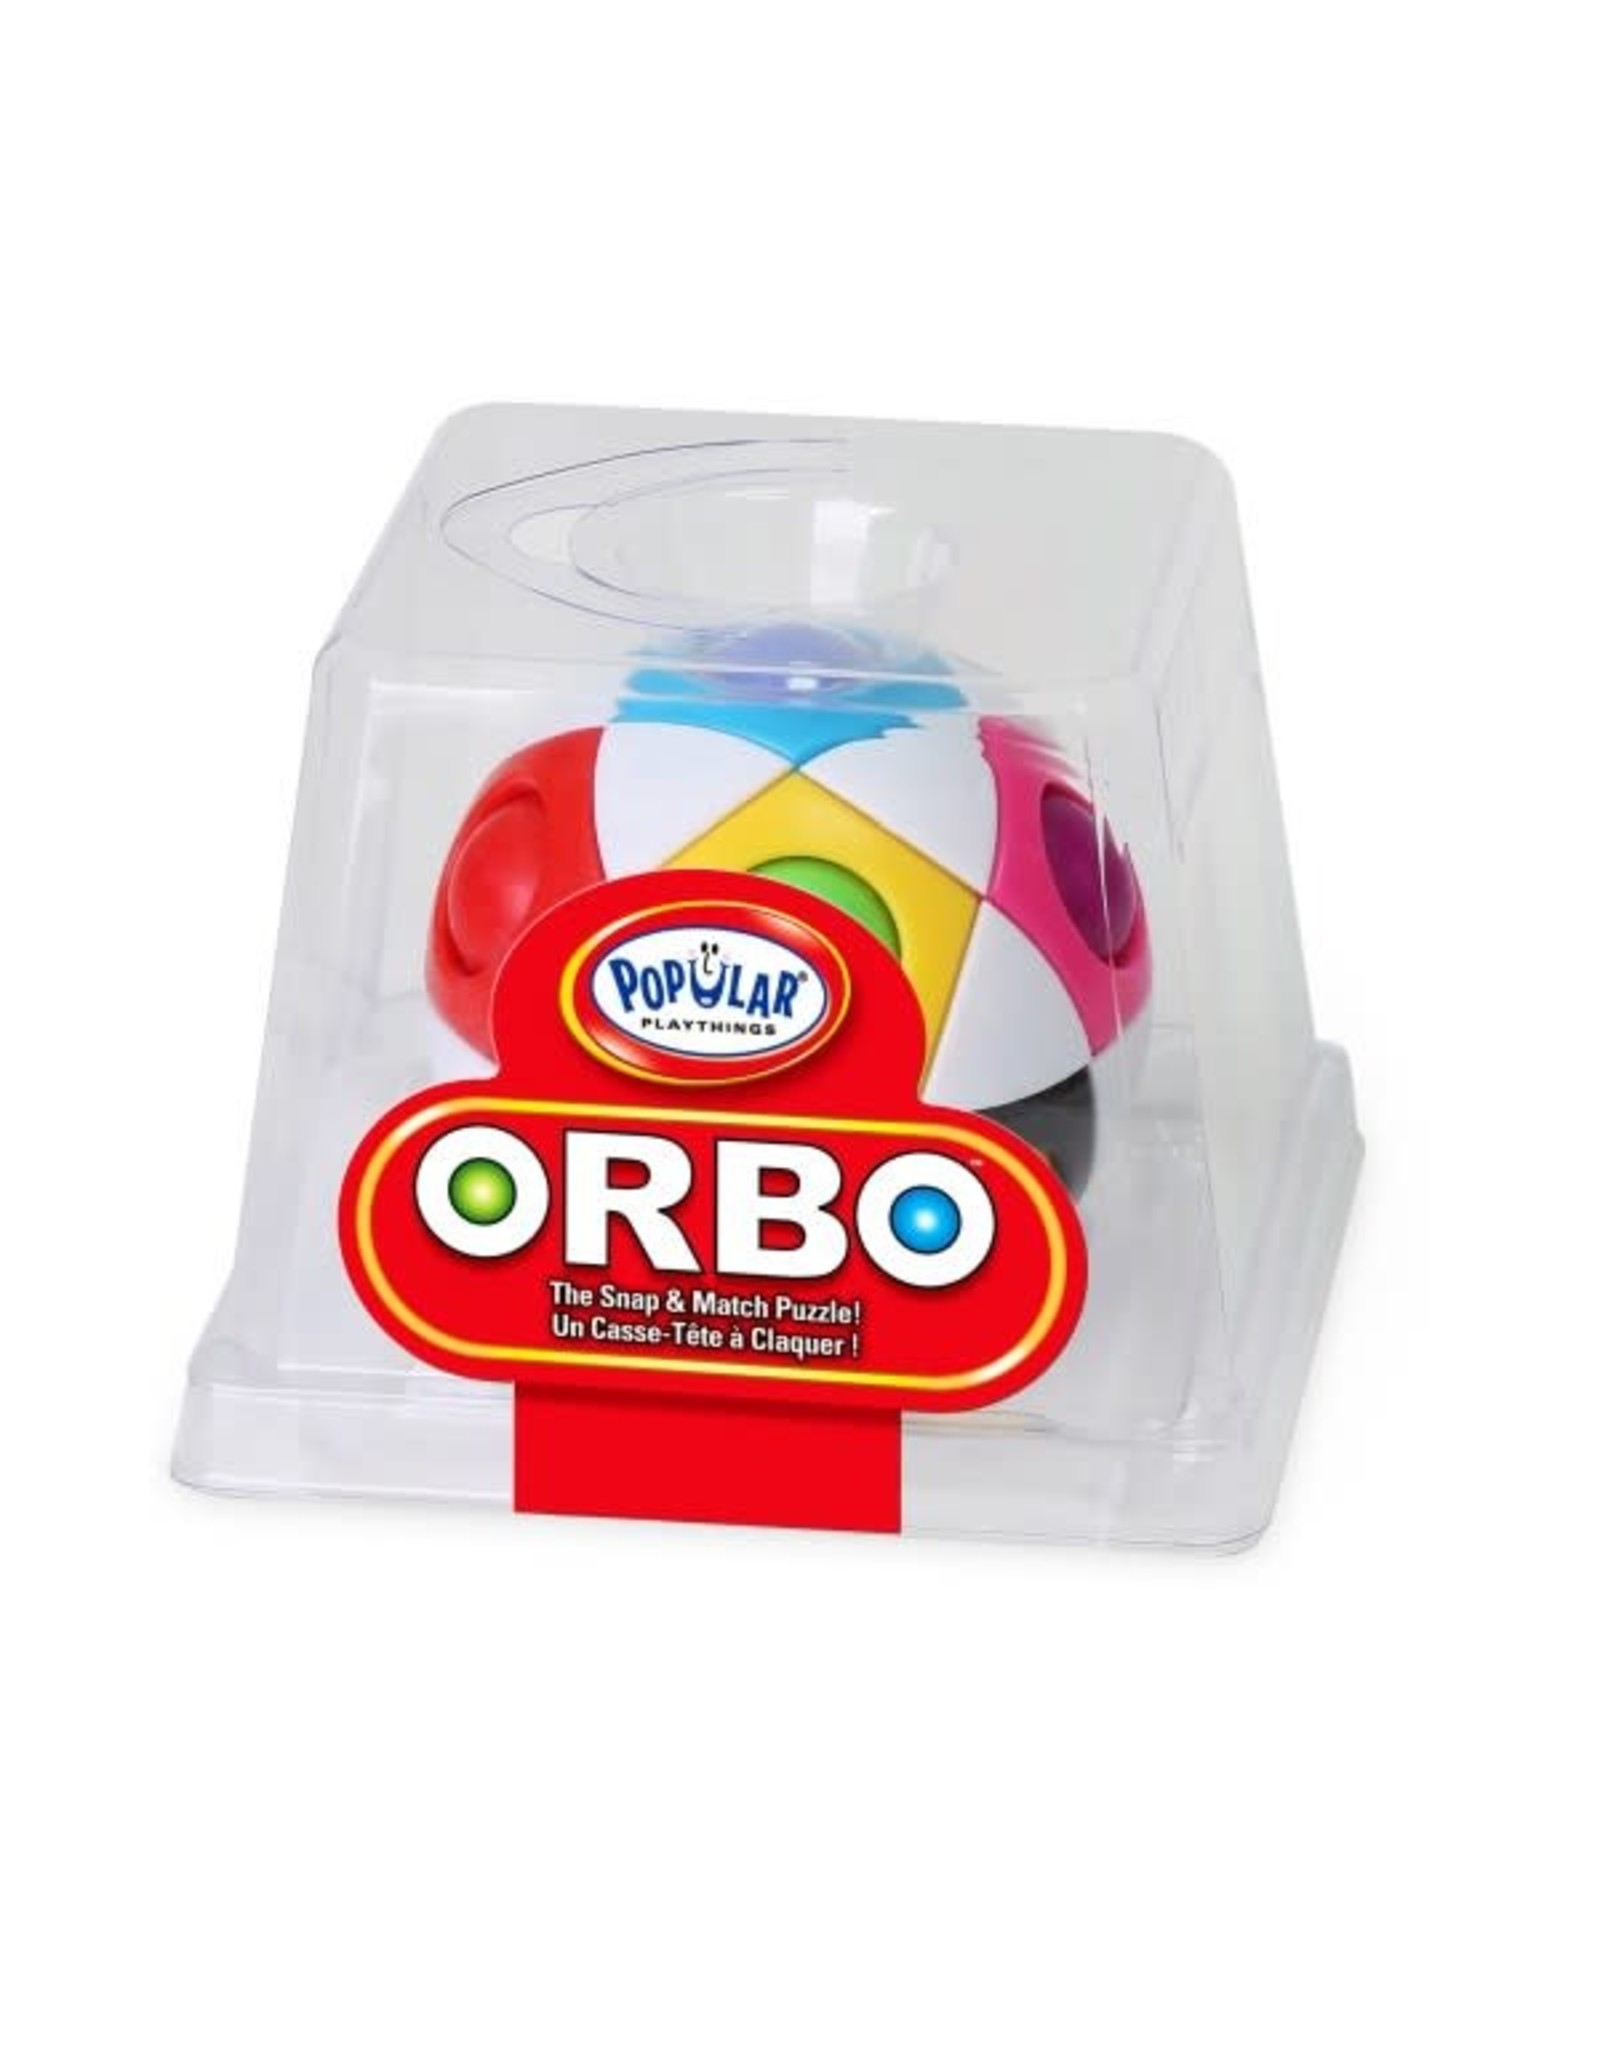 Popular Playthings Orbo Puzzle